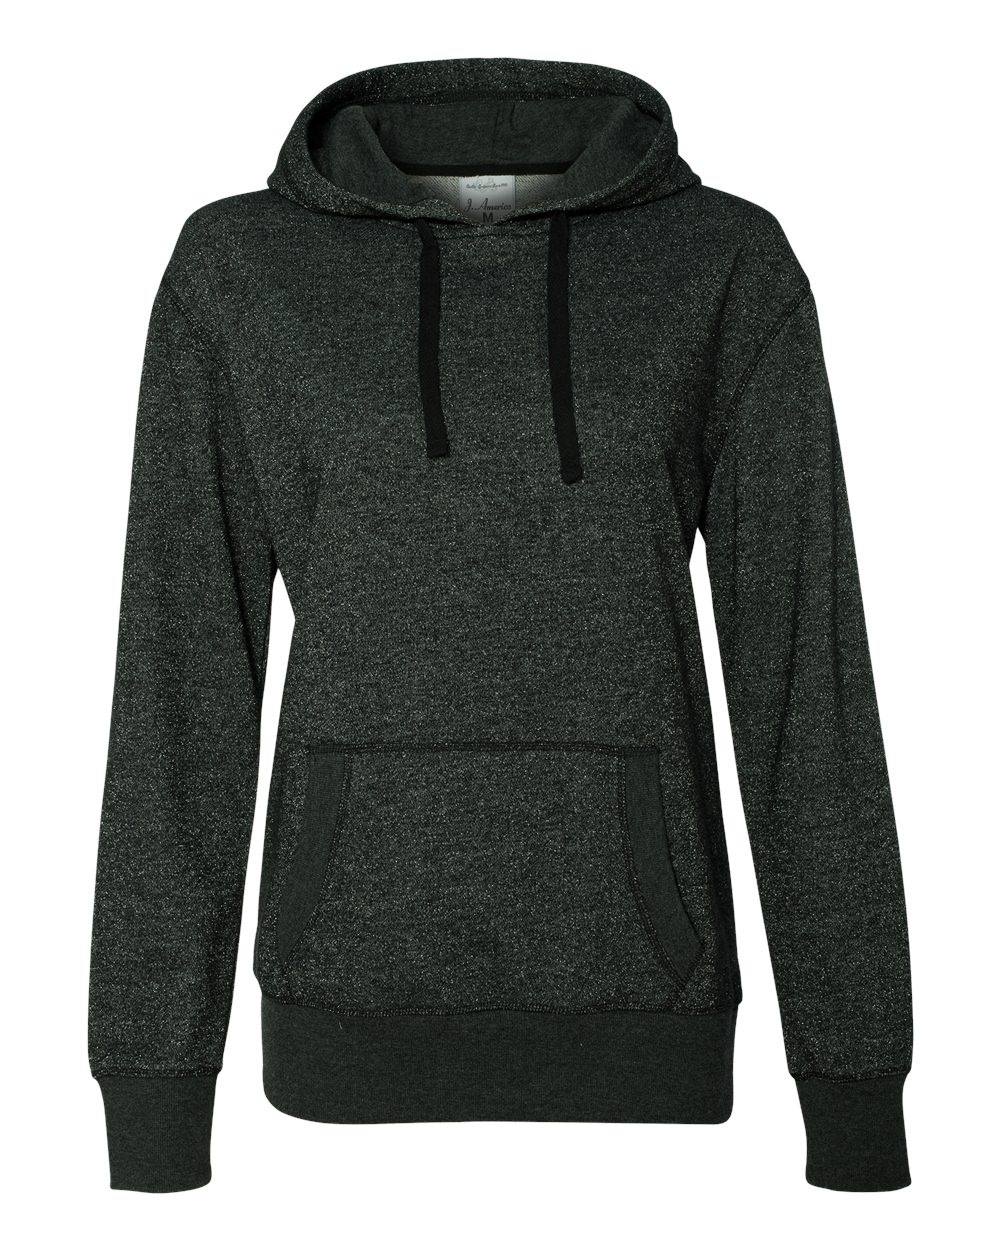 Dynamic Dance Hoodies